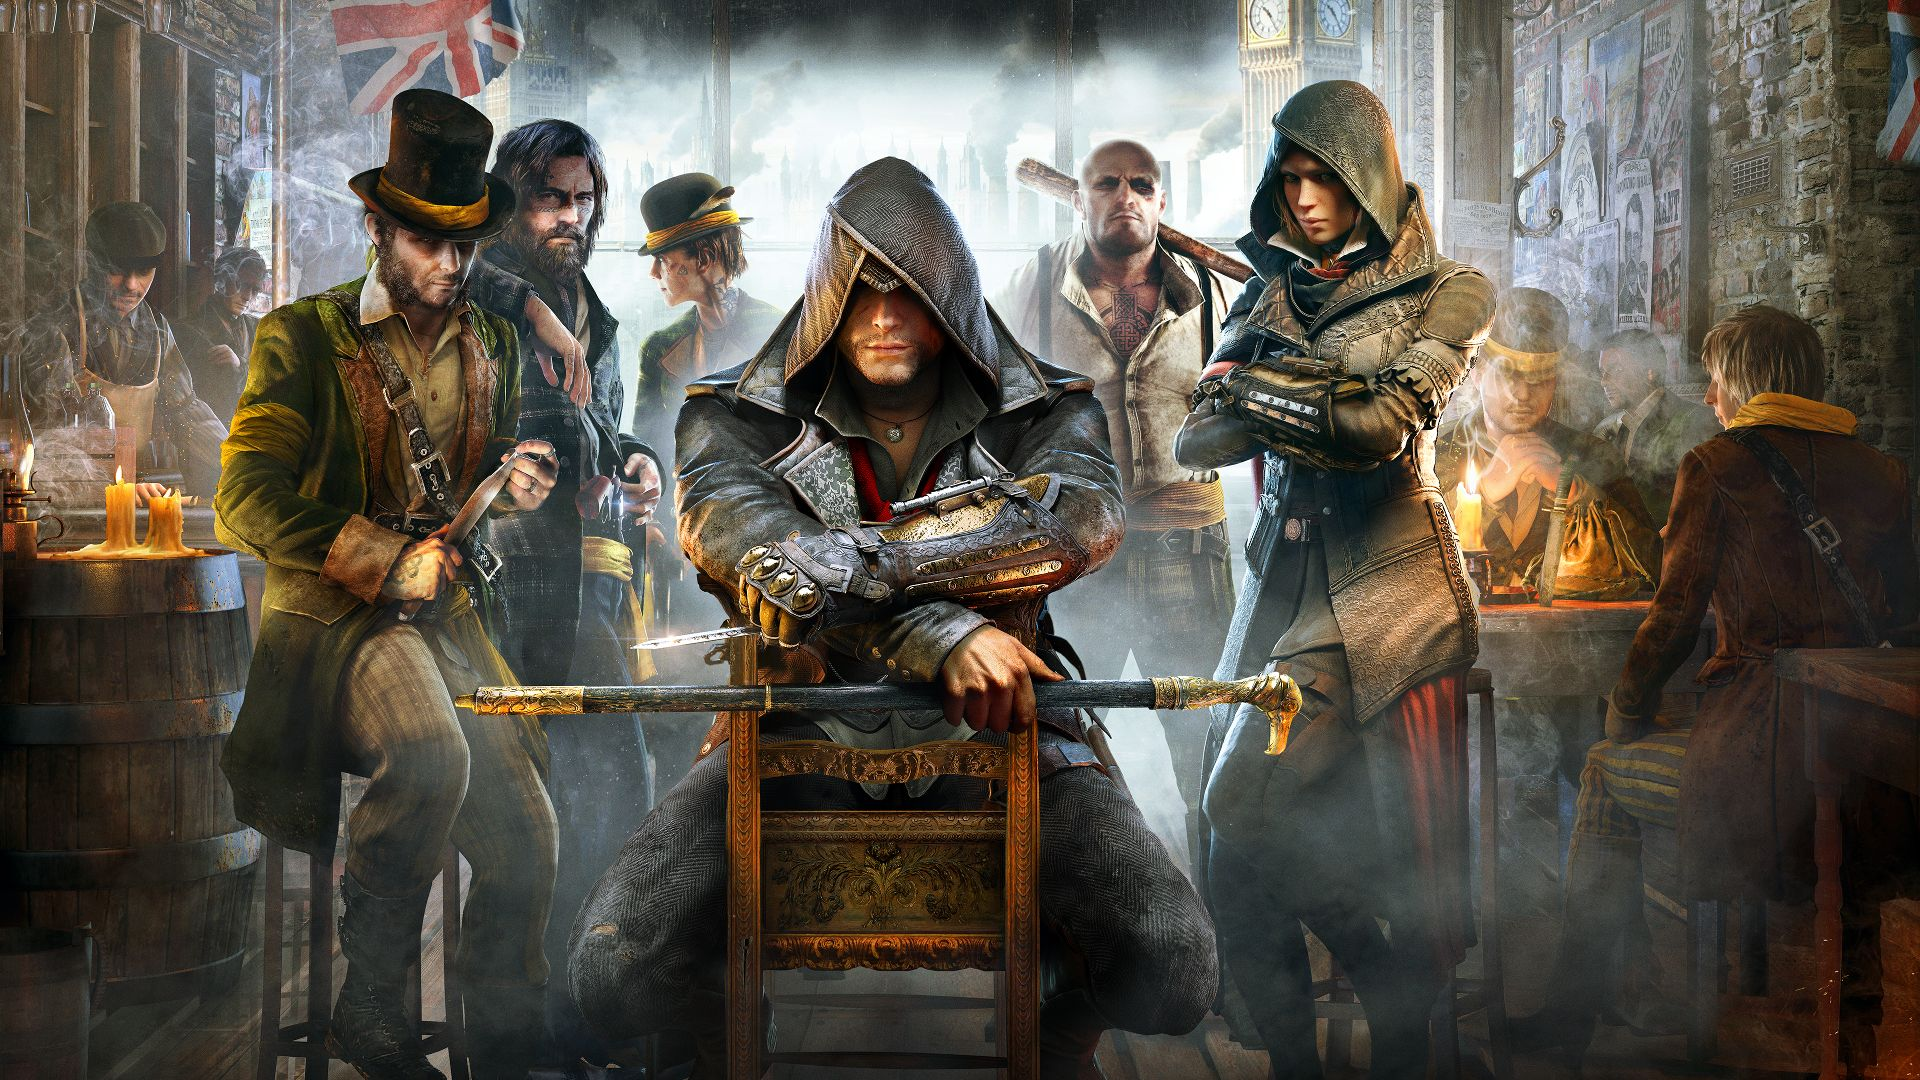 Games with Gold - Assassin's Creed Syndicate